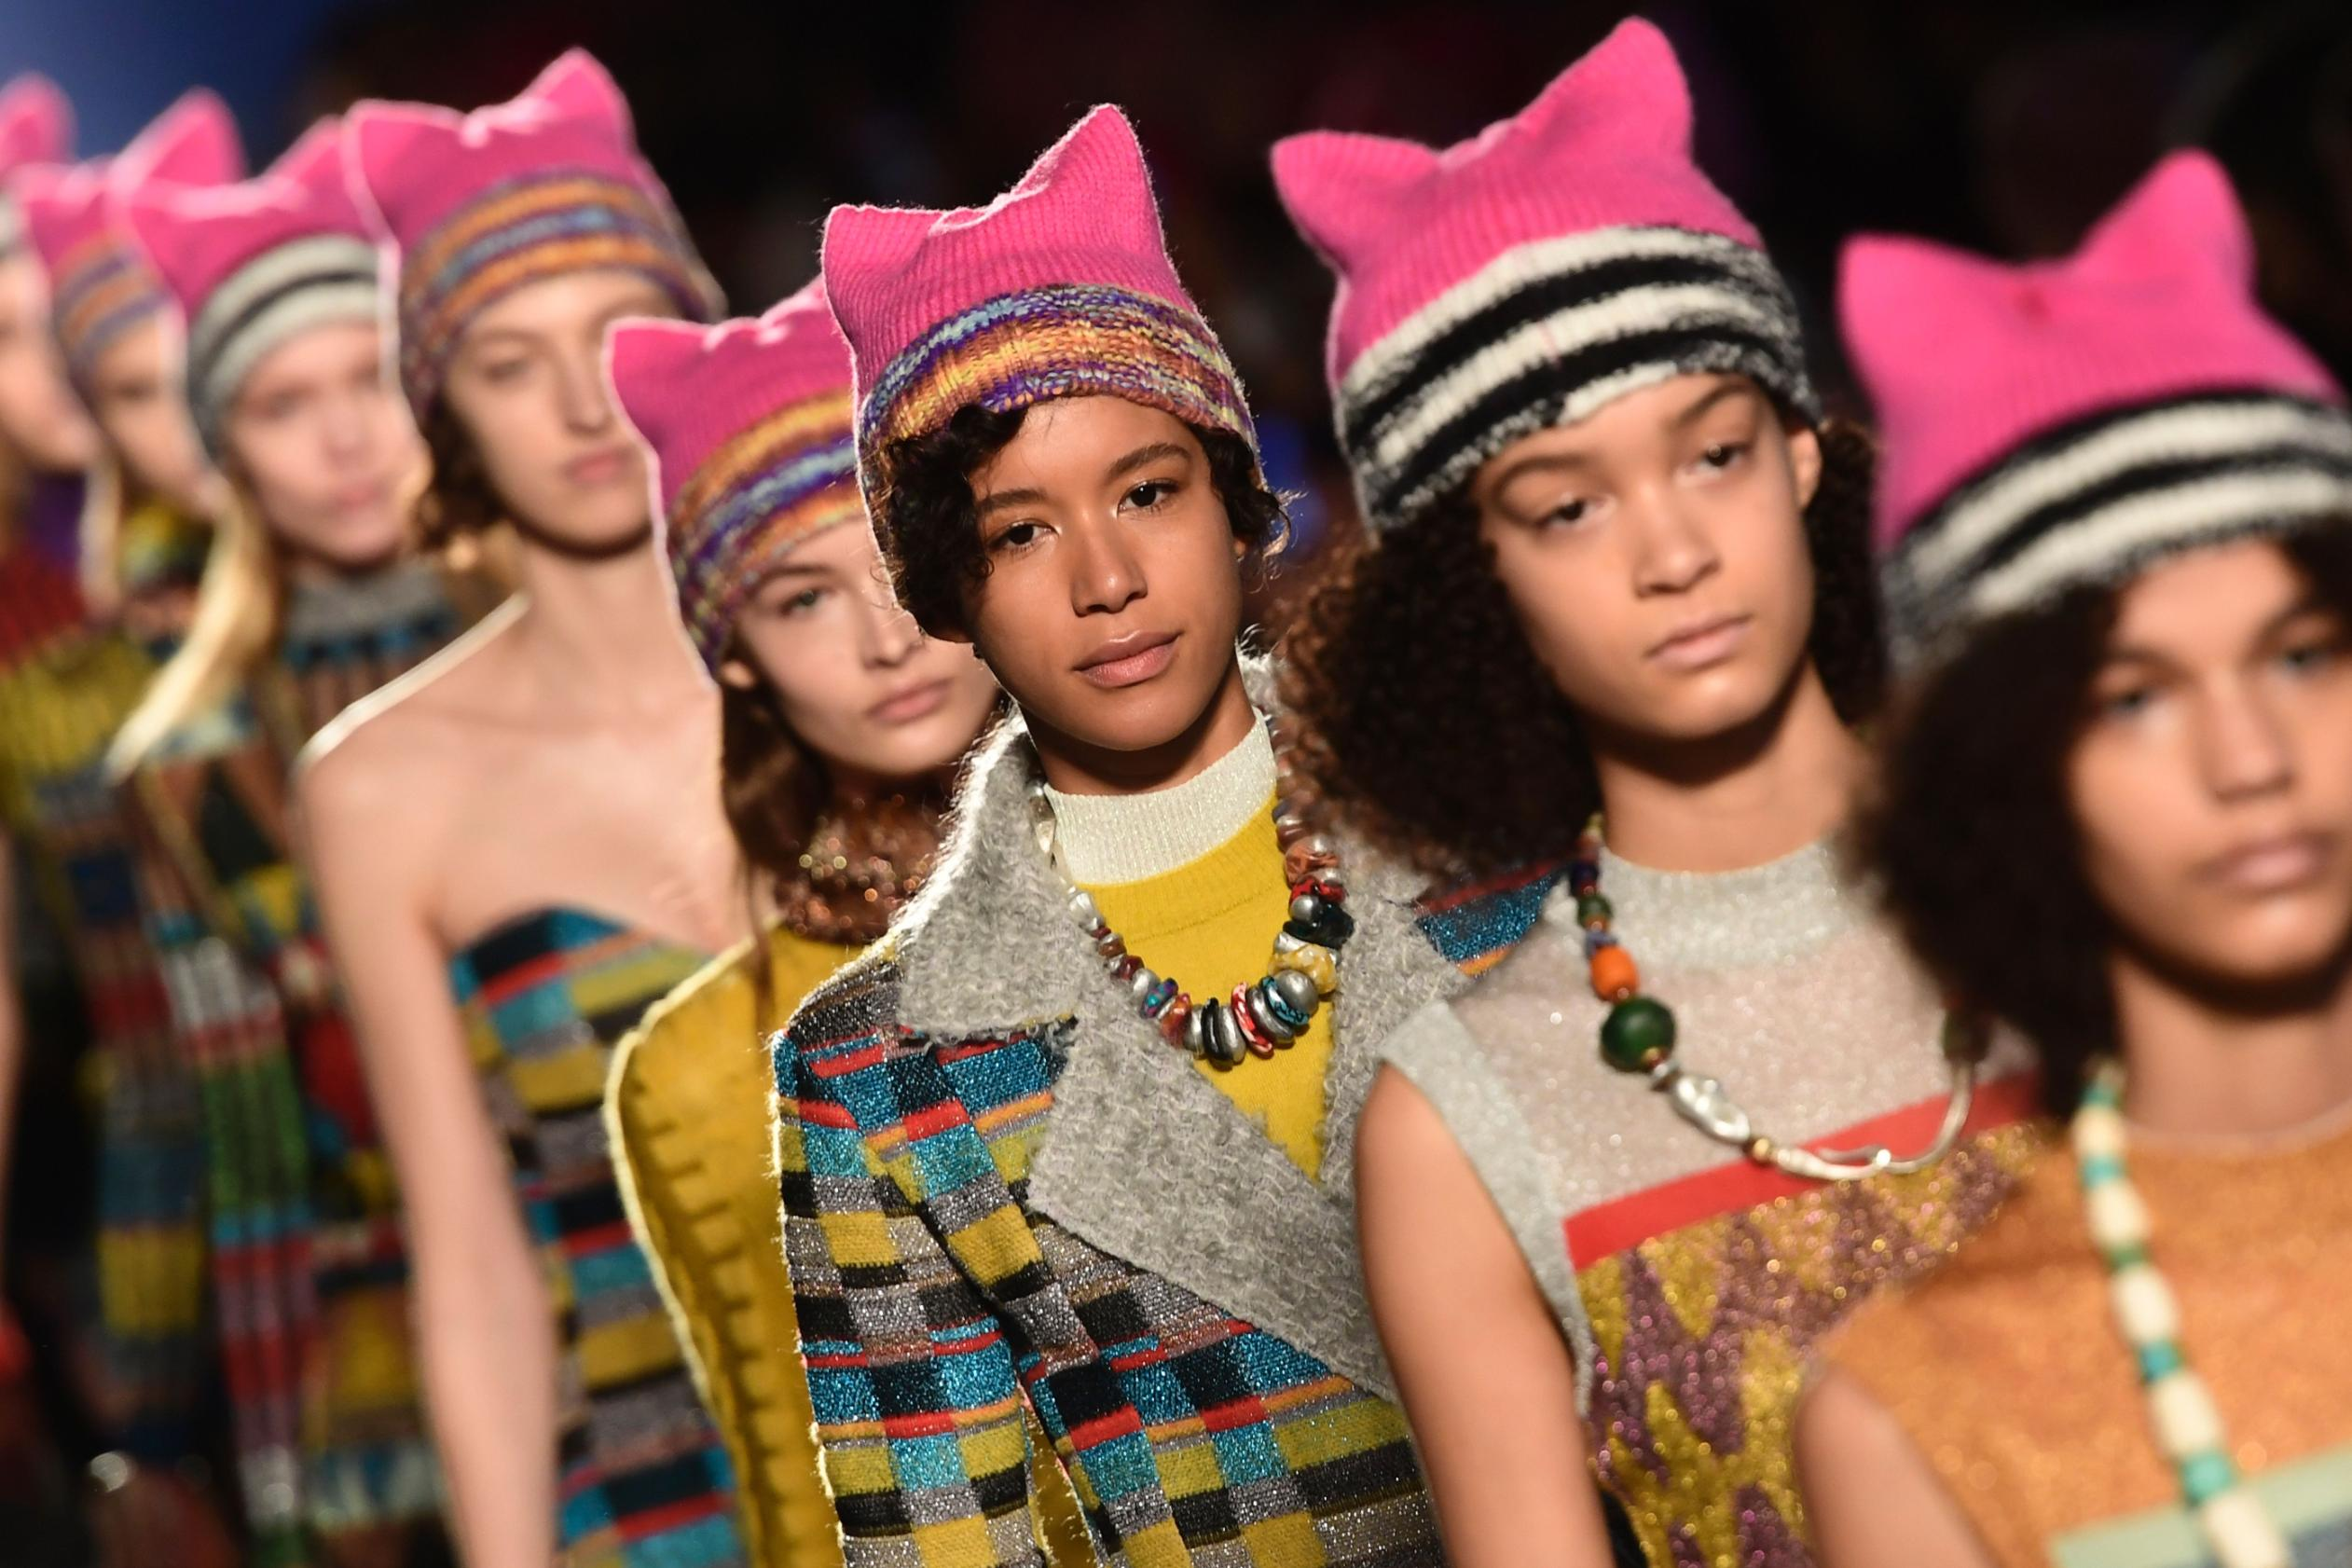 e6c251d3f0d Frida Kahlo  the Mexican artist who used fashion to make a powerful  political statement - CNN Style